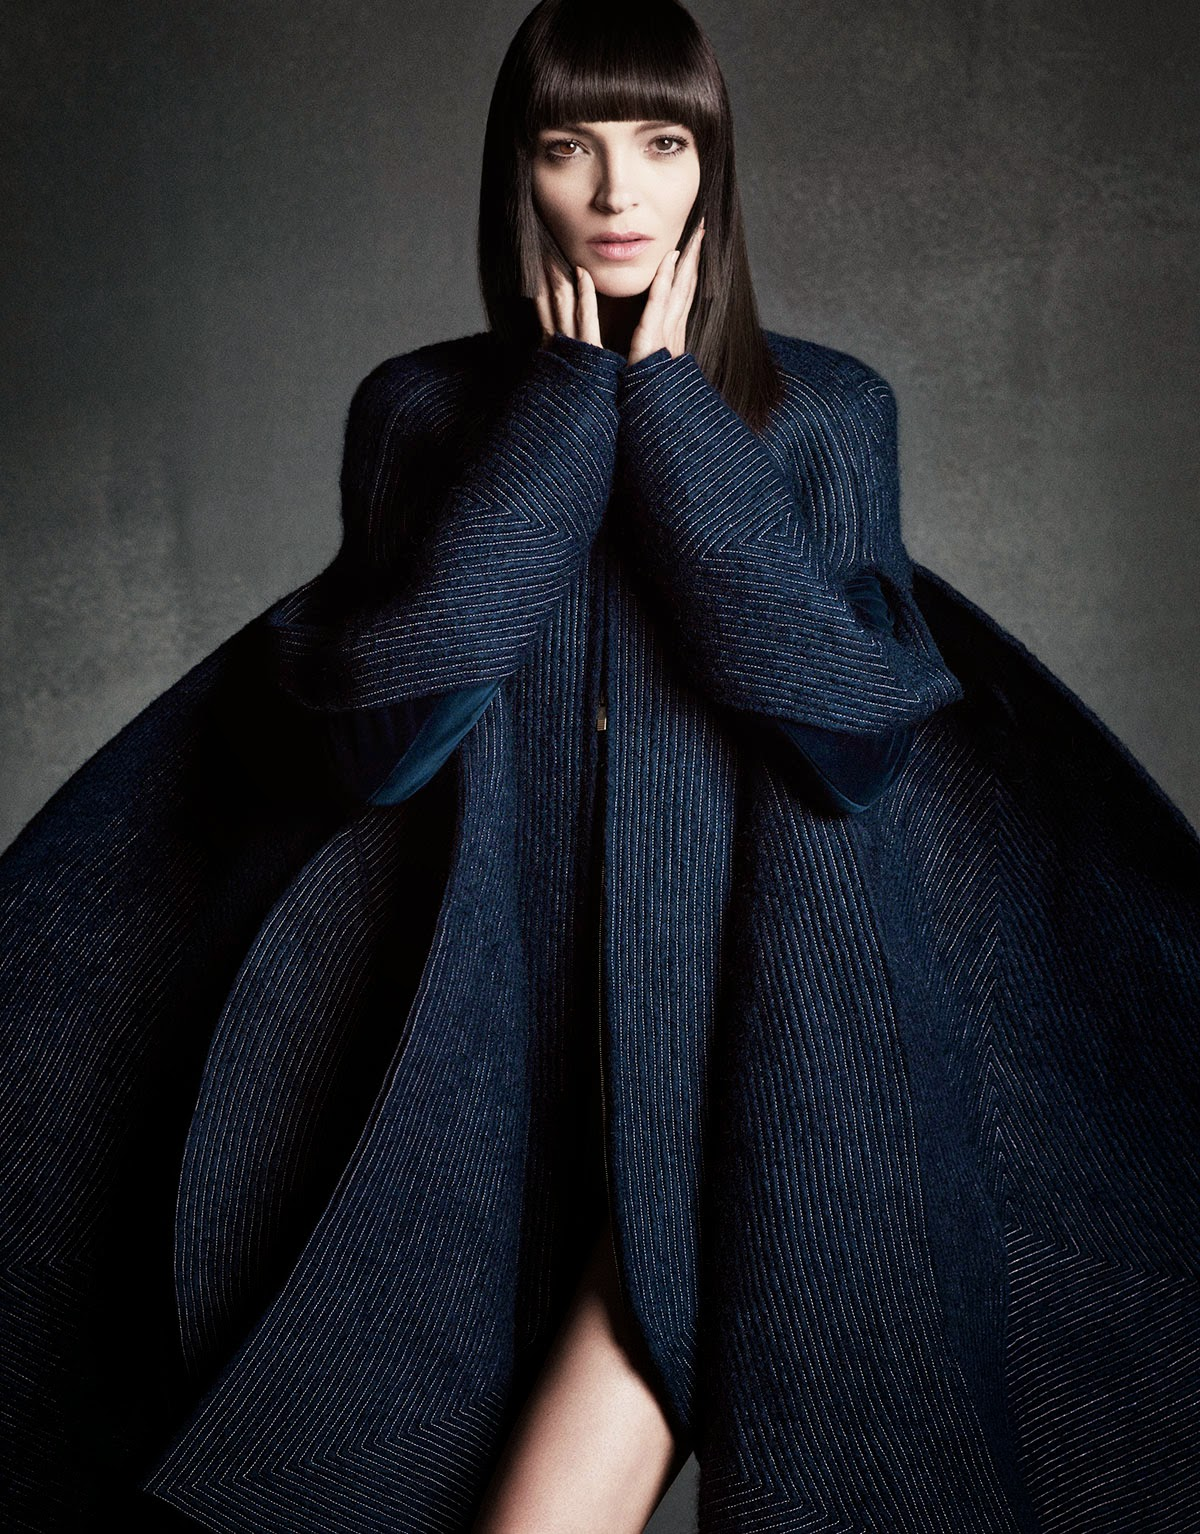 Mariacarla-Boscono-Perfect-Icon-Vogue-Japan-September-2014